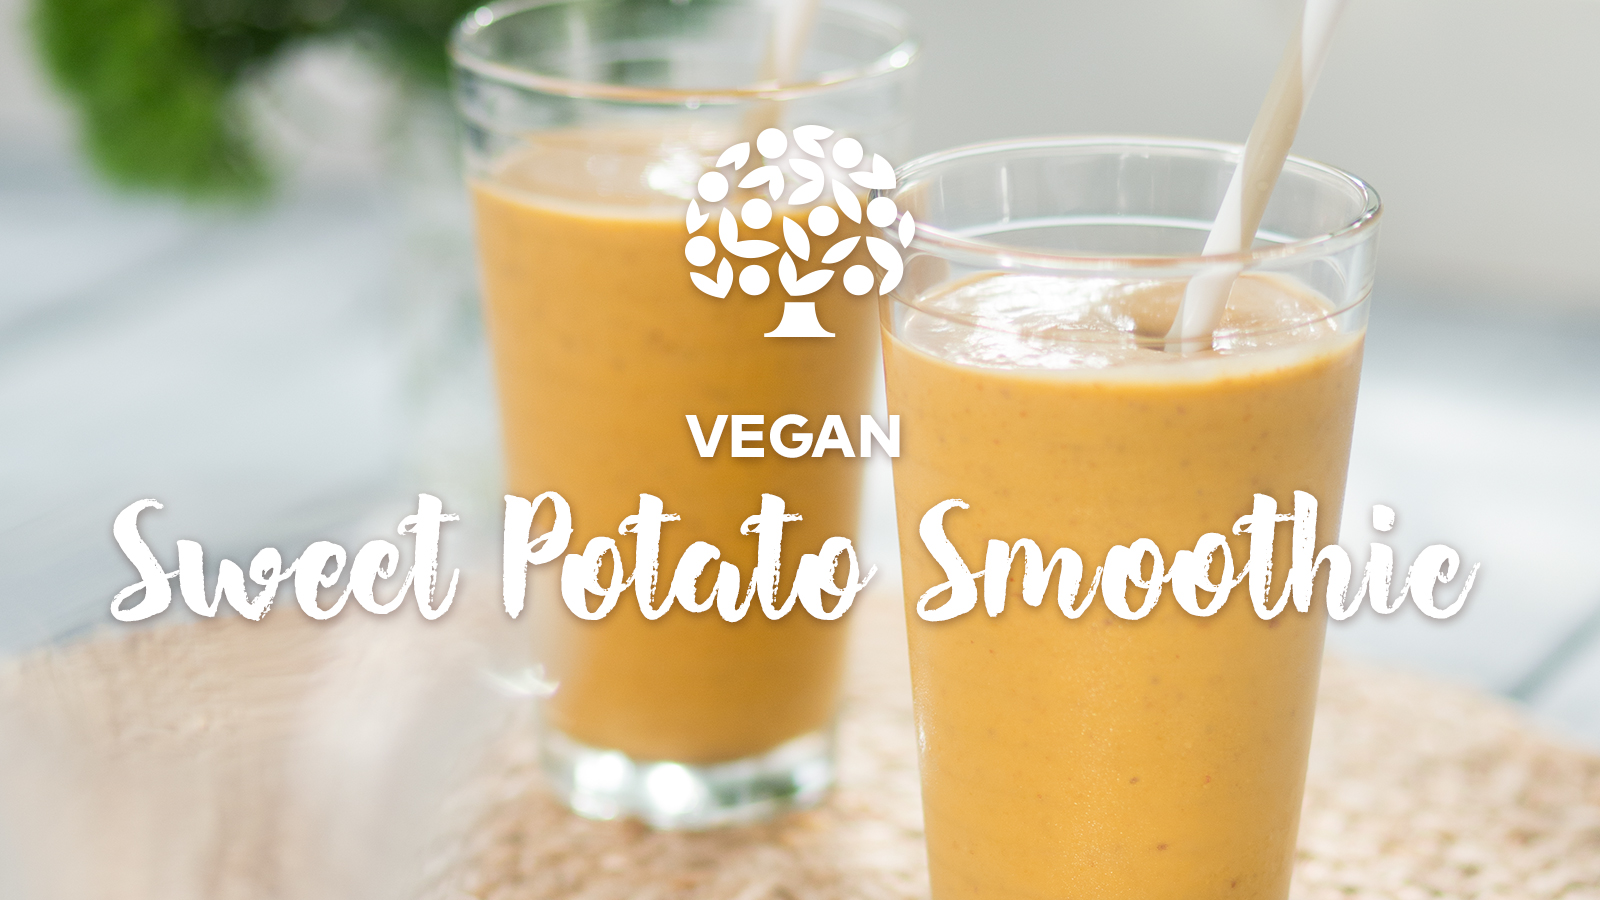 Vegan Sweet Potato Smoothie Recipe